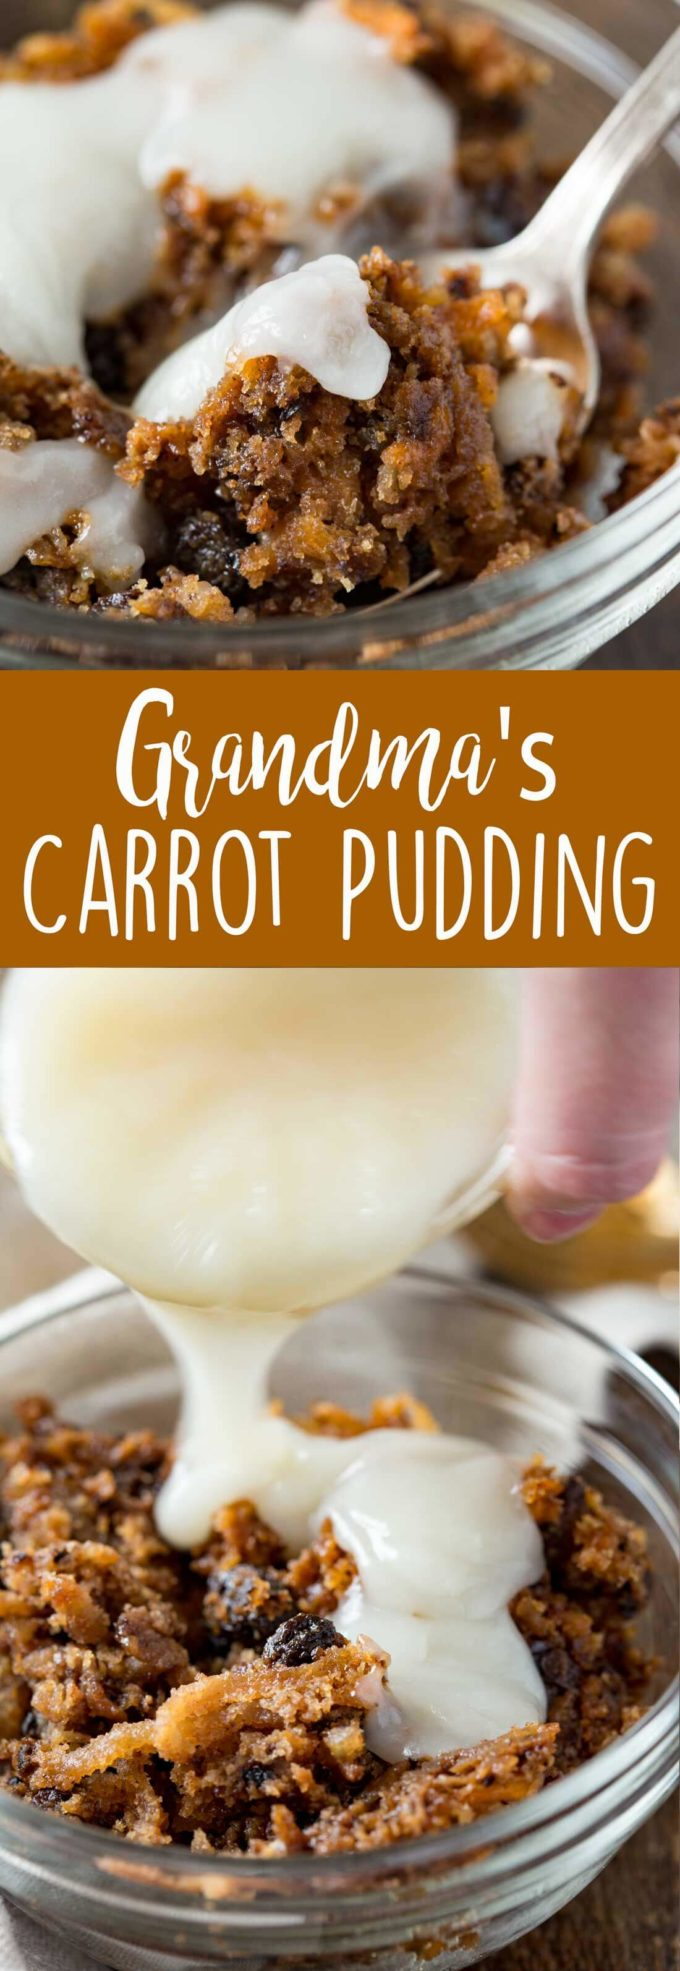 Classic carrot pudding like your grandma used to make